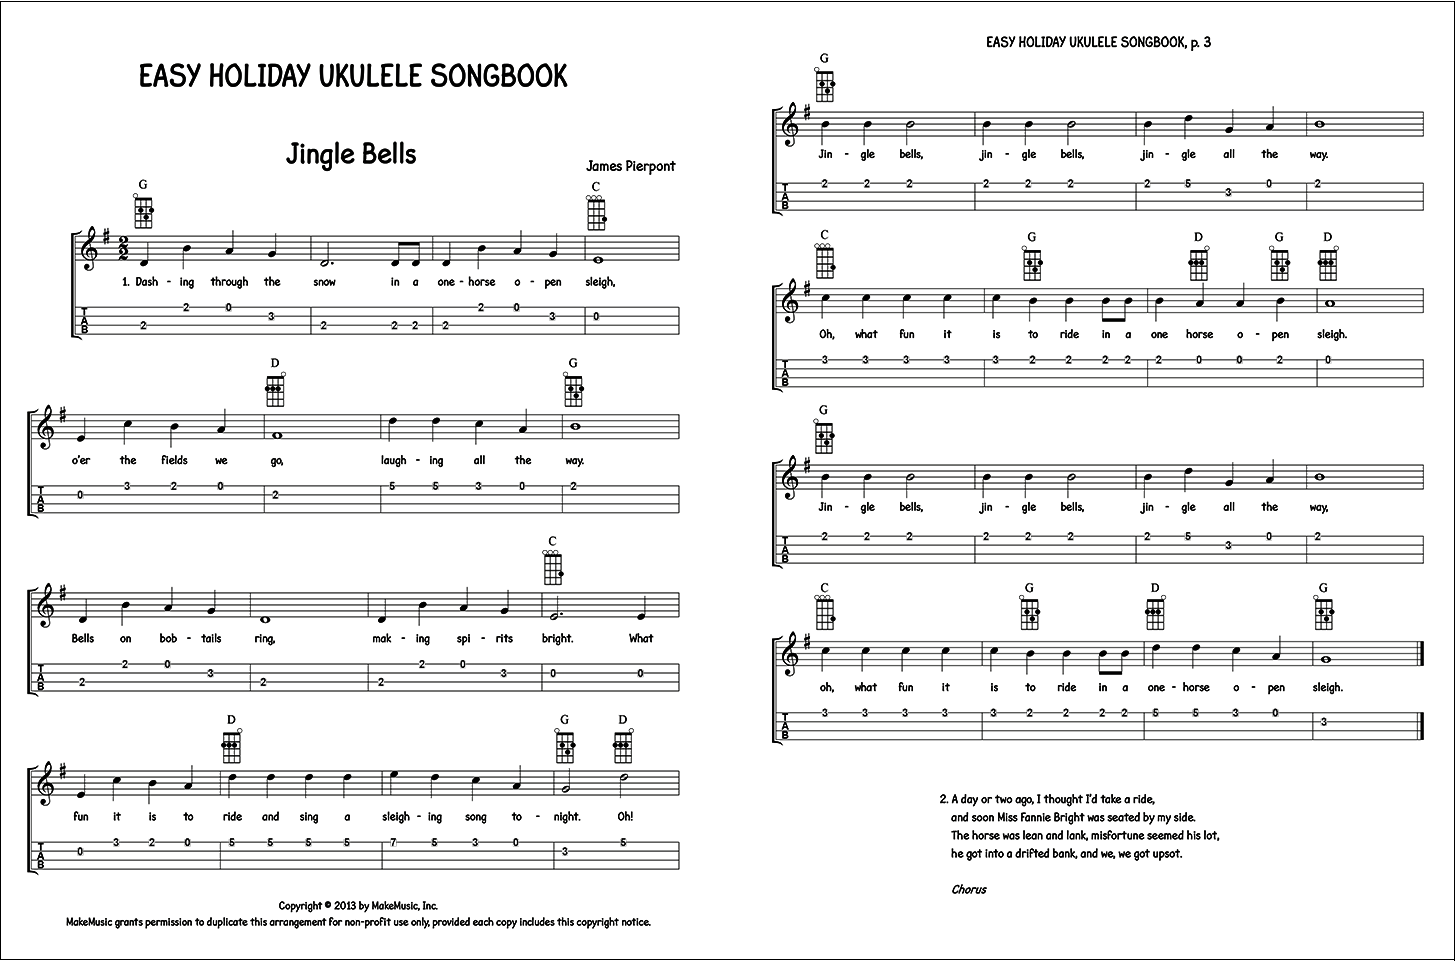 Easy Holiday Ukulele Songbook - Unearthing Hidden Treasure: Finale's Worksheets and Repertoire